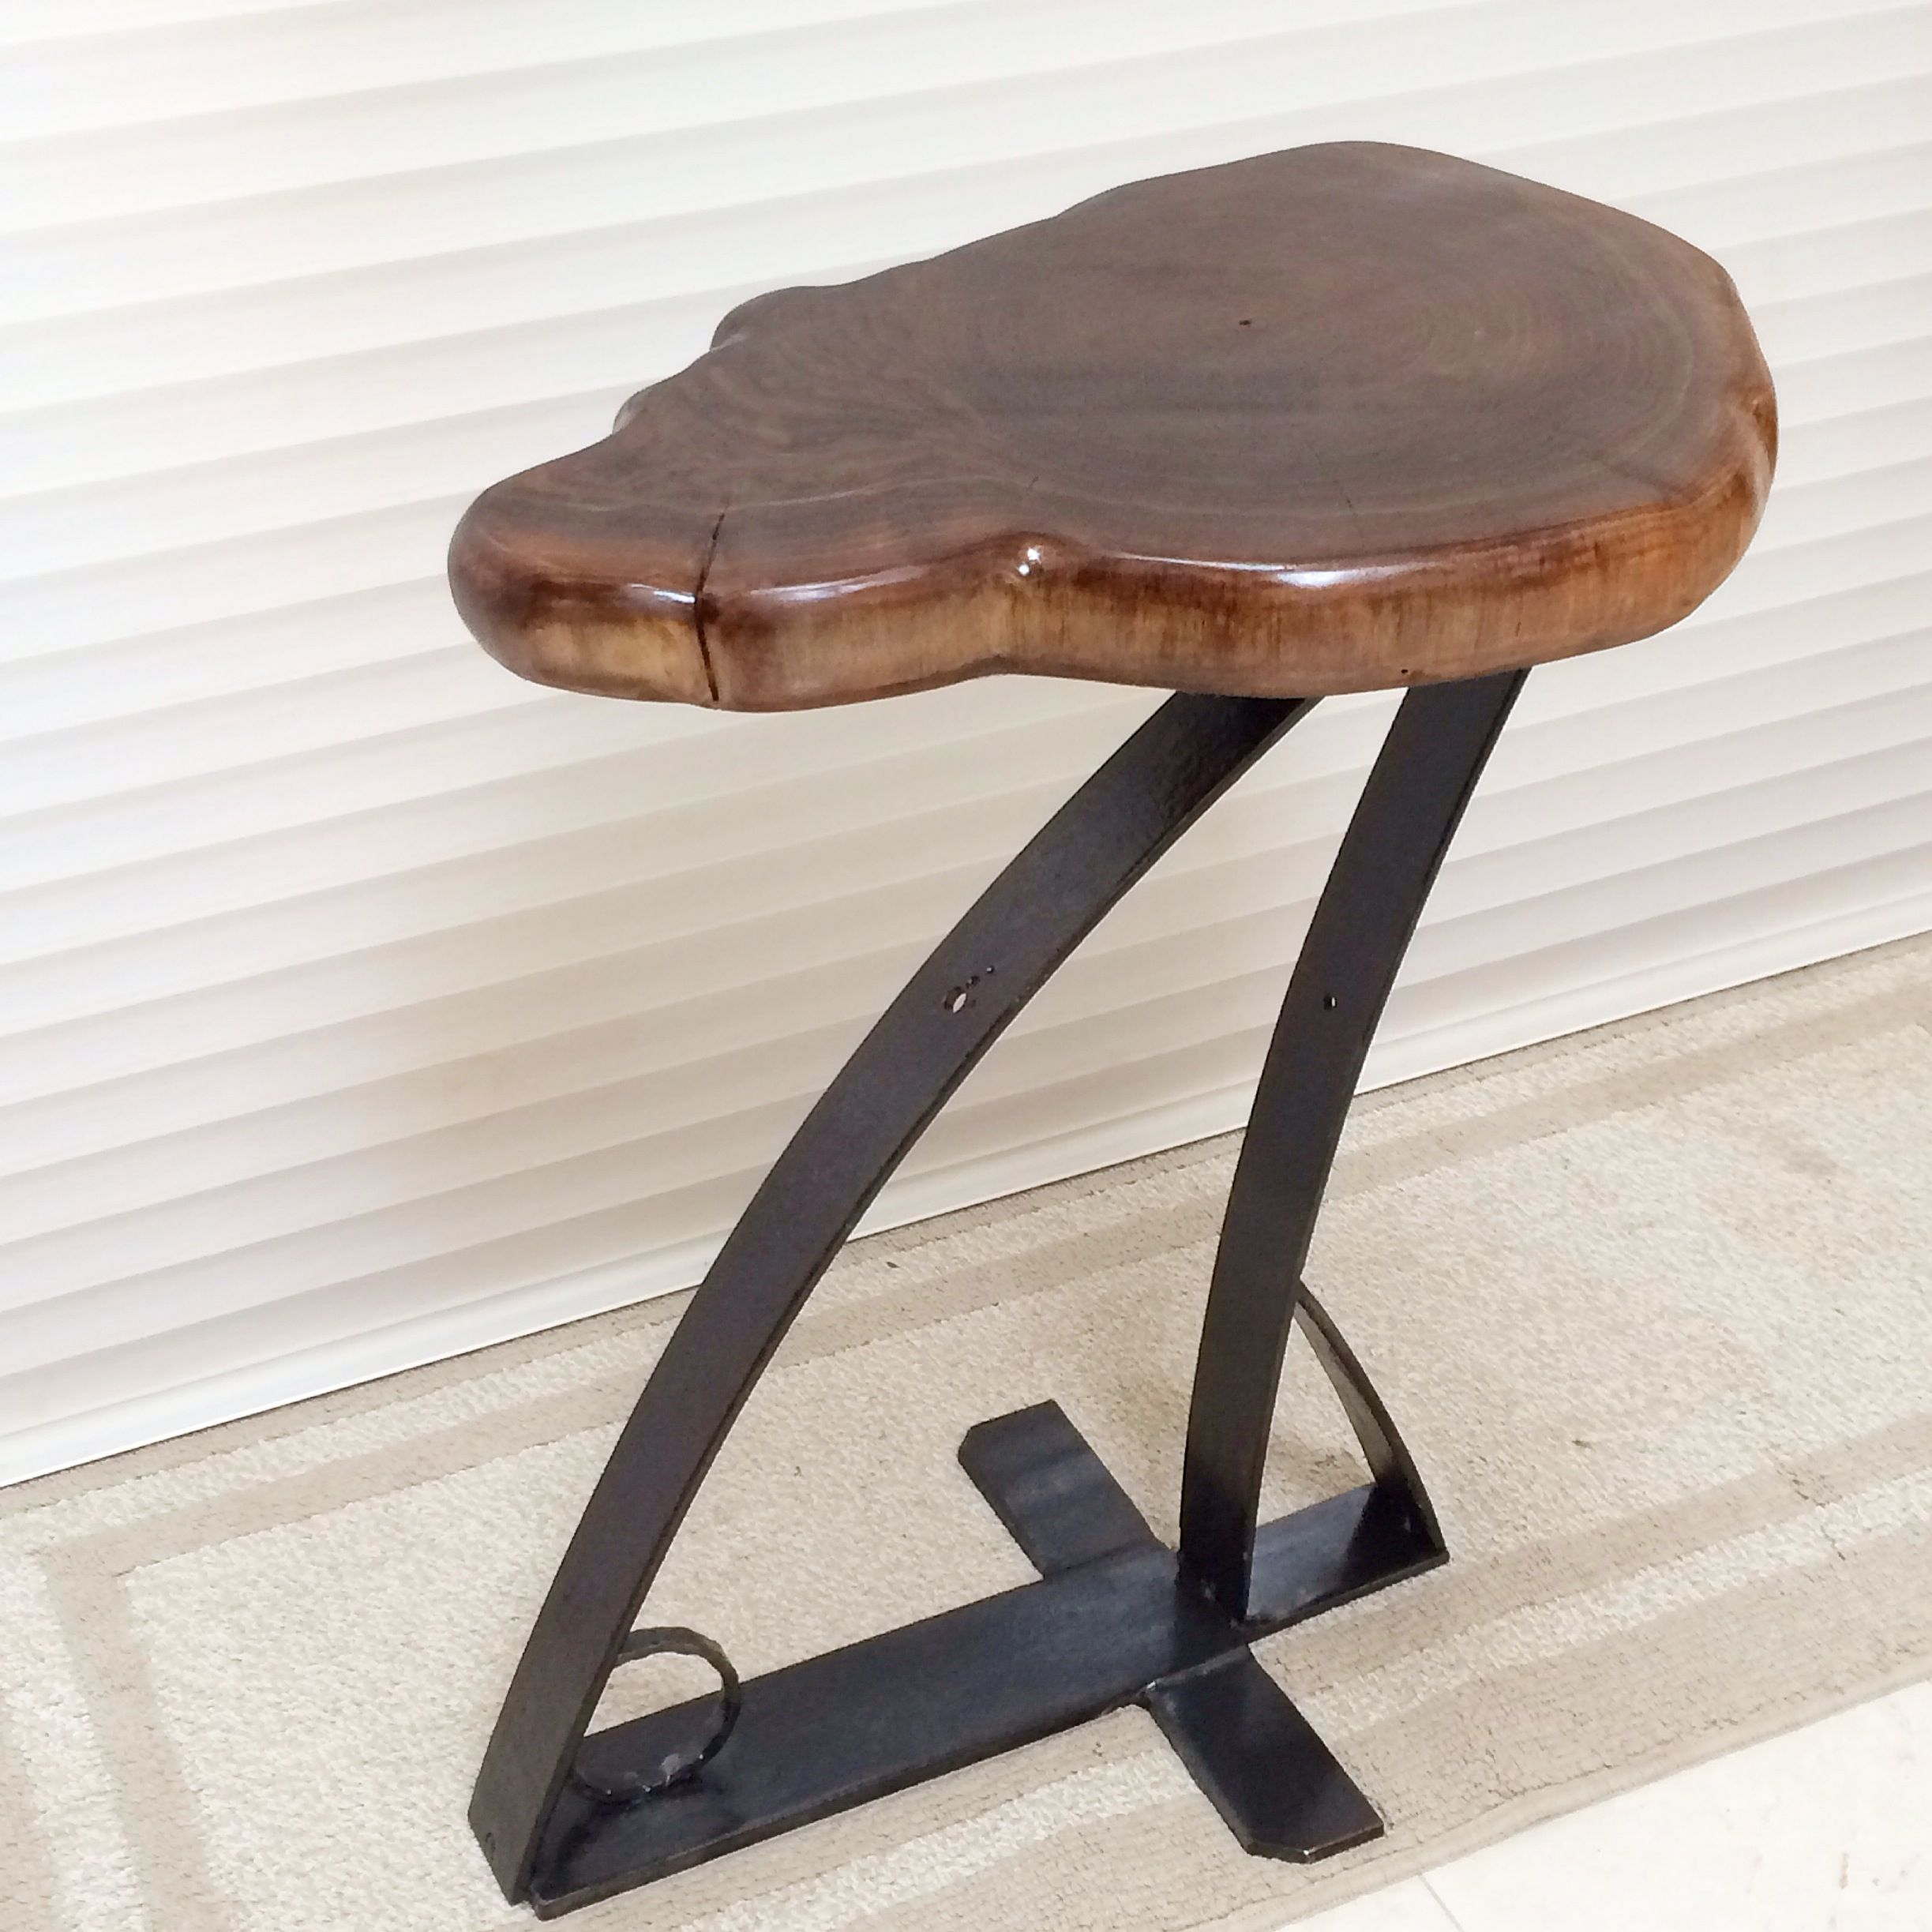 hand made urban industrial side table end accent custom outdoor wood bench round nesting tables college dorm ping ralph lauren tablecloth over the couch indoor plant black antique